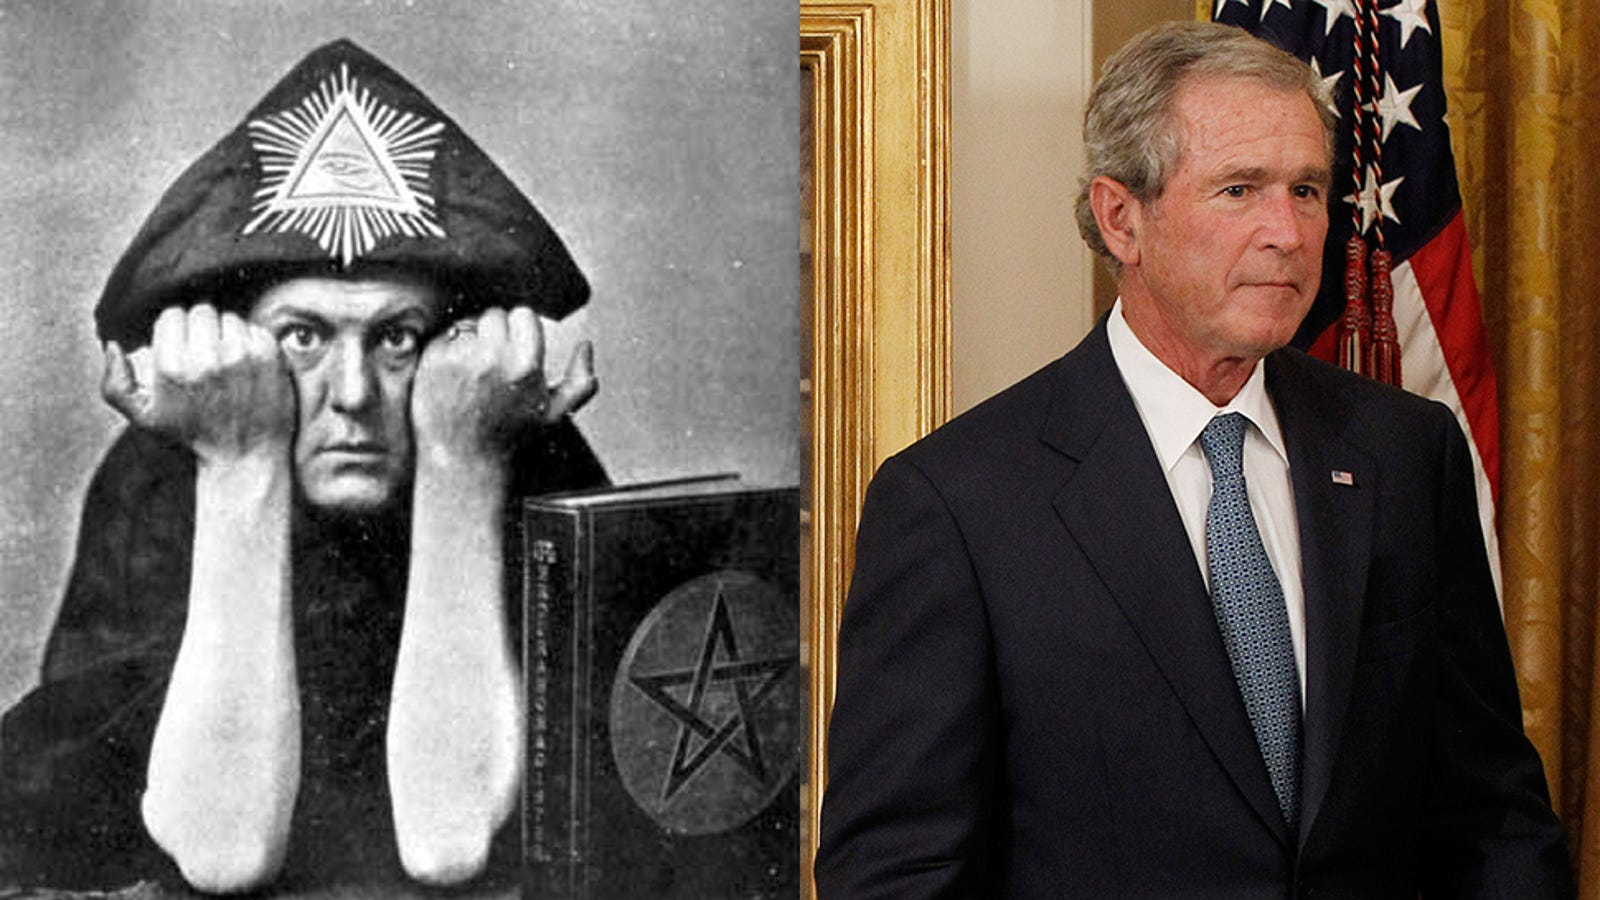 According to the Internet, Aleister Crowley Was George W. Bush's Grandfather